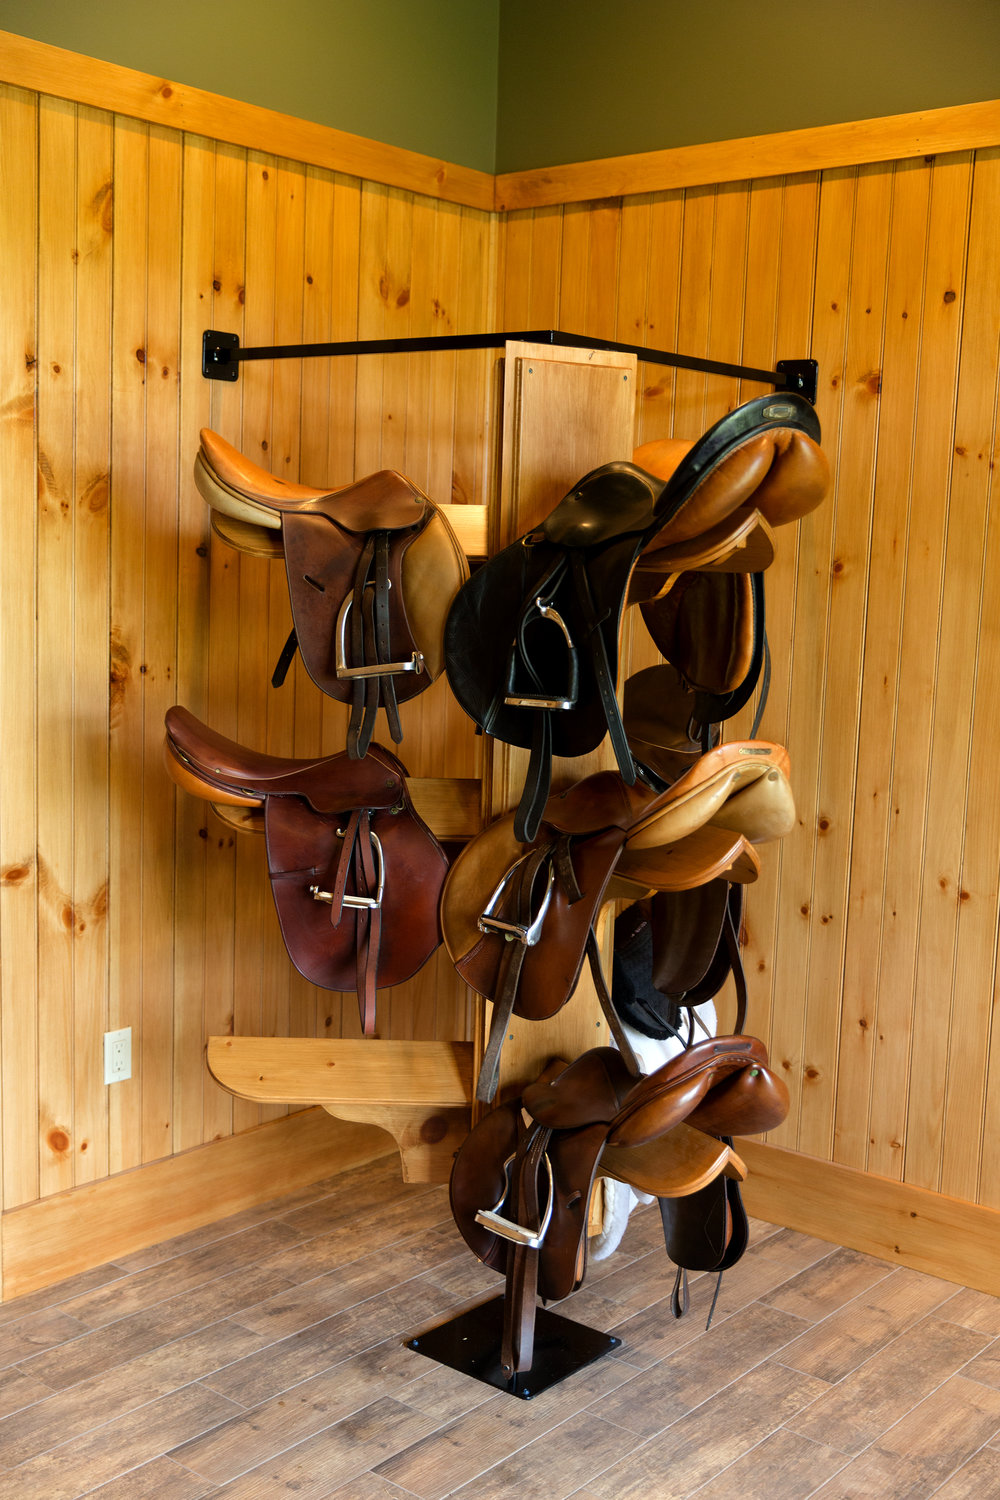 00 Saddle Carousel.jpg